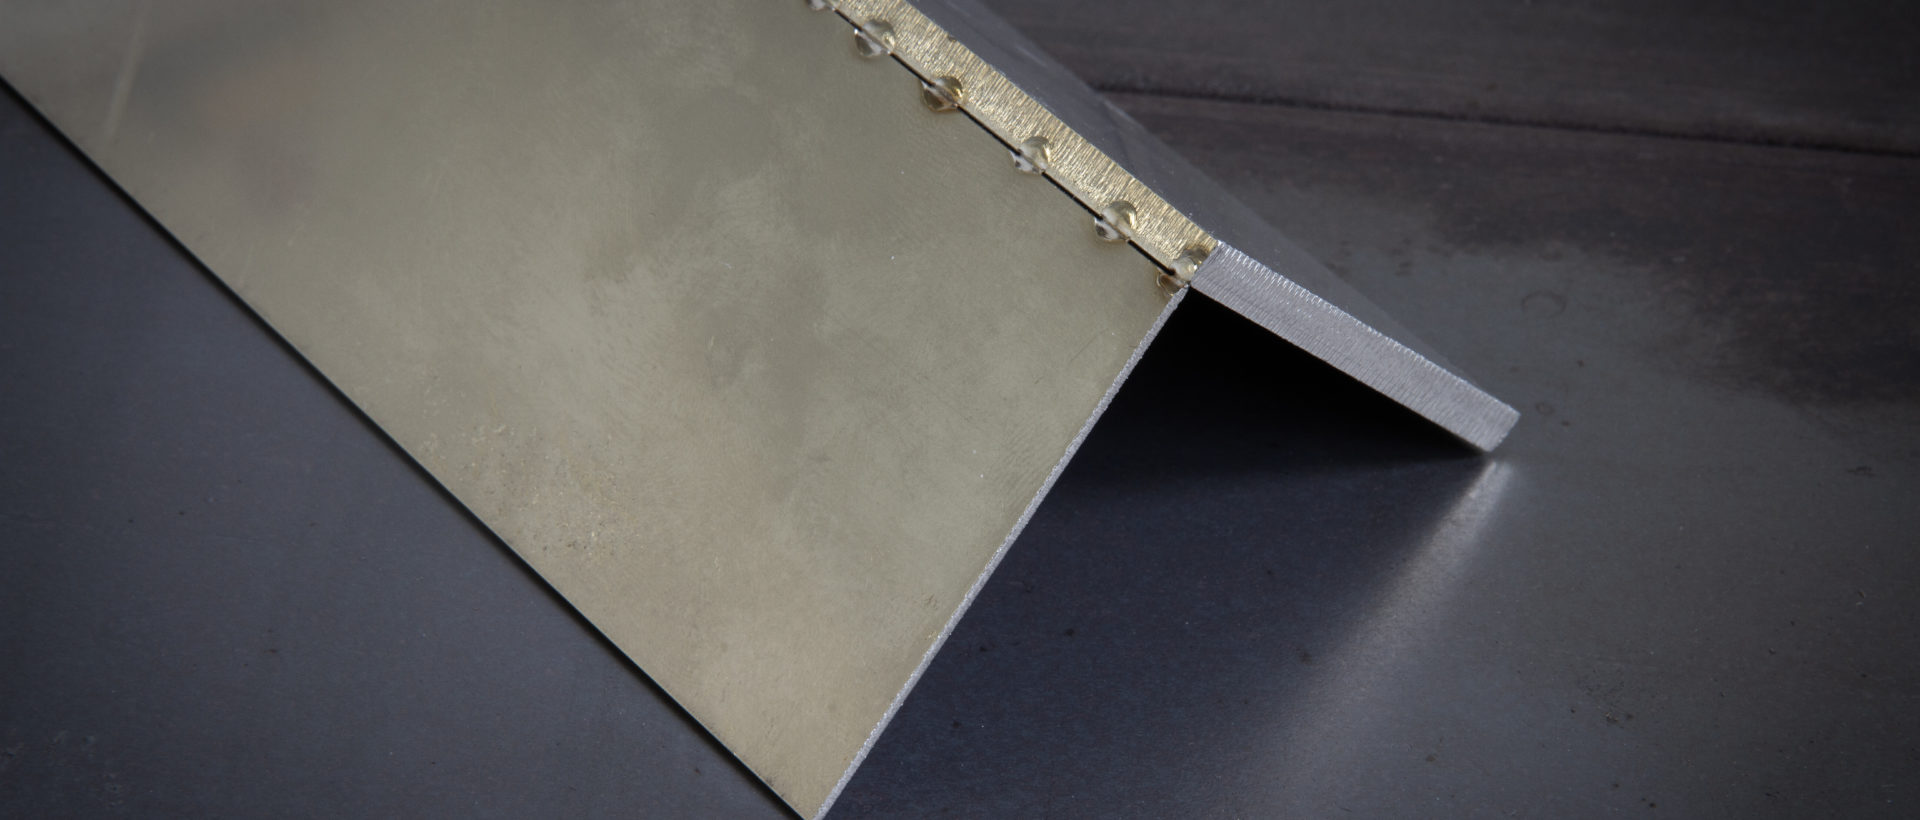 MicroTack revolutionizes the tack welding of thin sheet metal